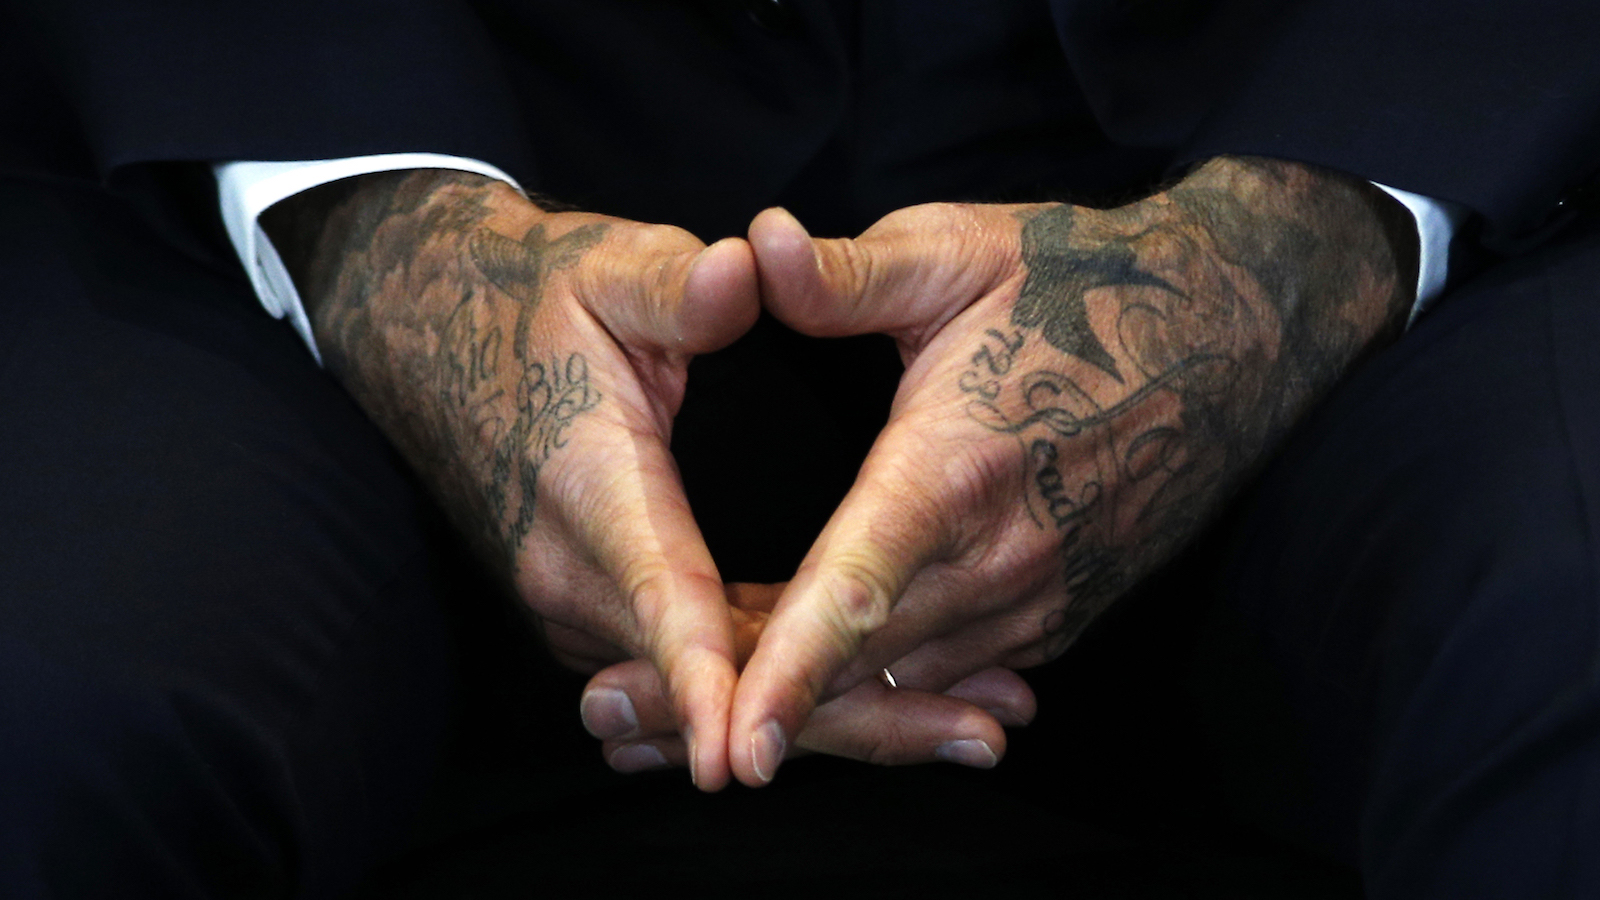 """David Beckham attends a press conference to mark his 10 years as a UNICEF Goodwill Ambassador, at Google's headquarters in central London, February 9, 2015. Beckham announced the launch of a new fund, """"7: David Beckham UNICEF Fund"""", named after his old shirt number.  REUTERS/Peter Nicholls (BRITAIN - Tags: ENTERTAINMENT SOCIETY SPORT SOCCER) - RTR4OU7P"""